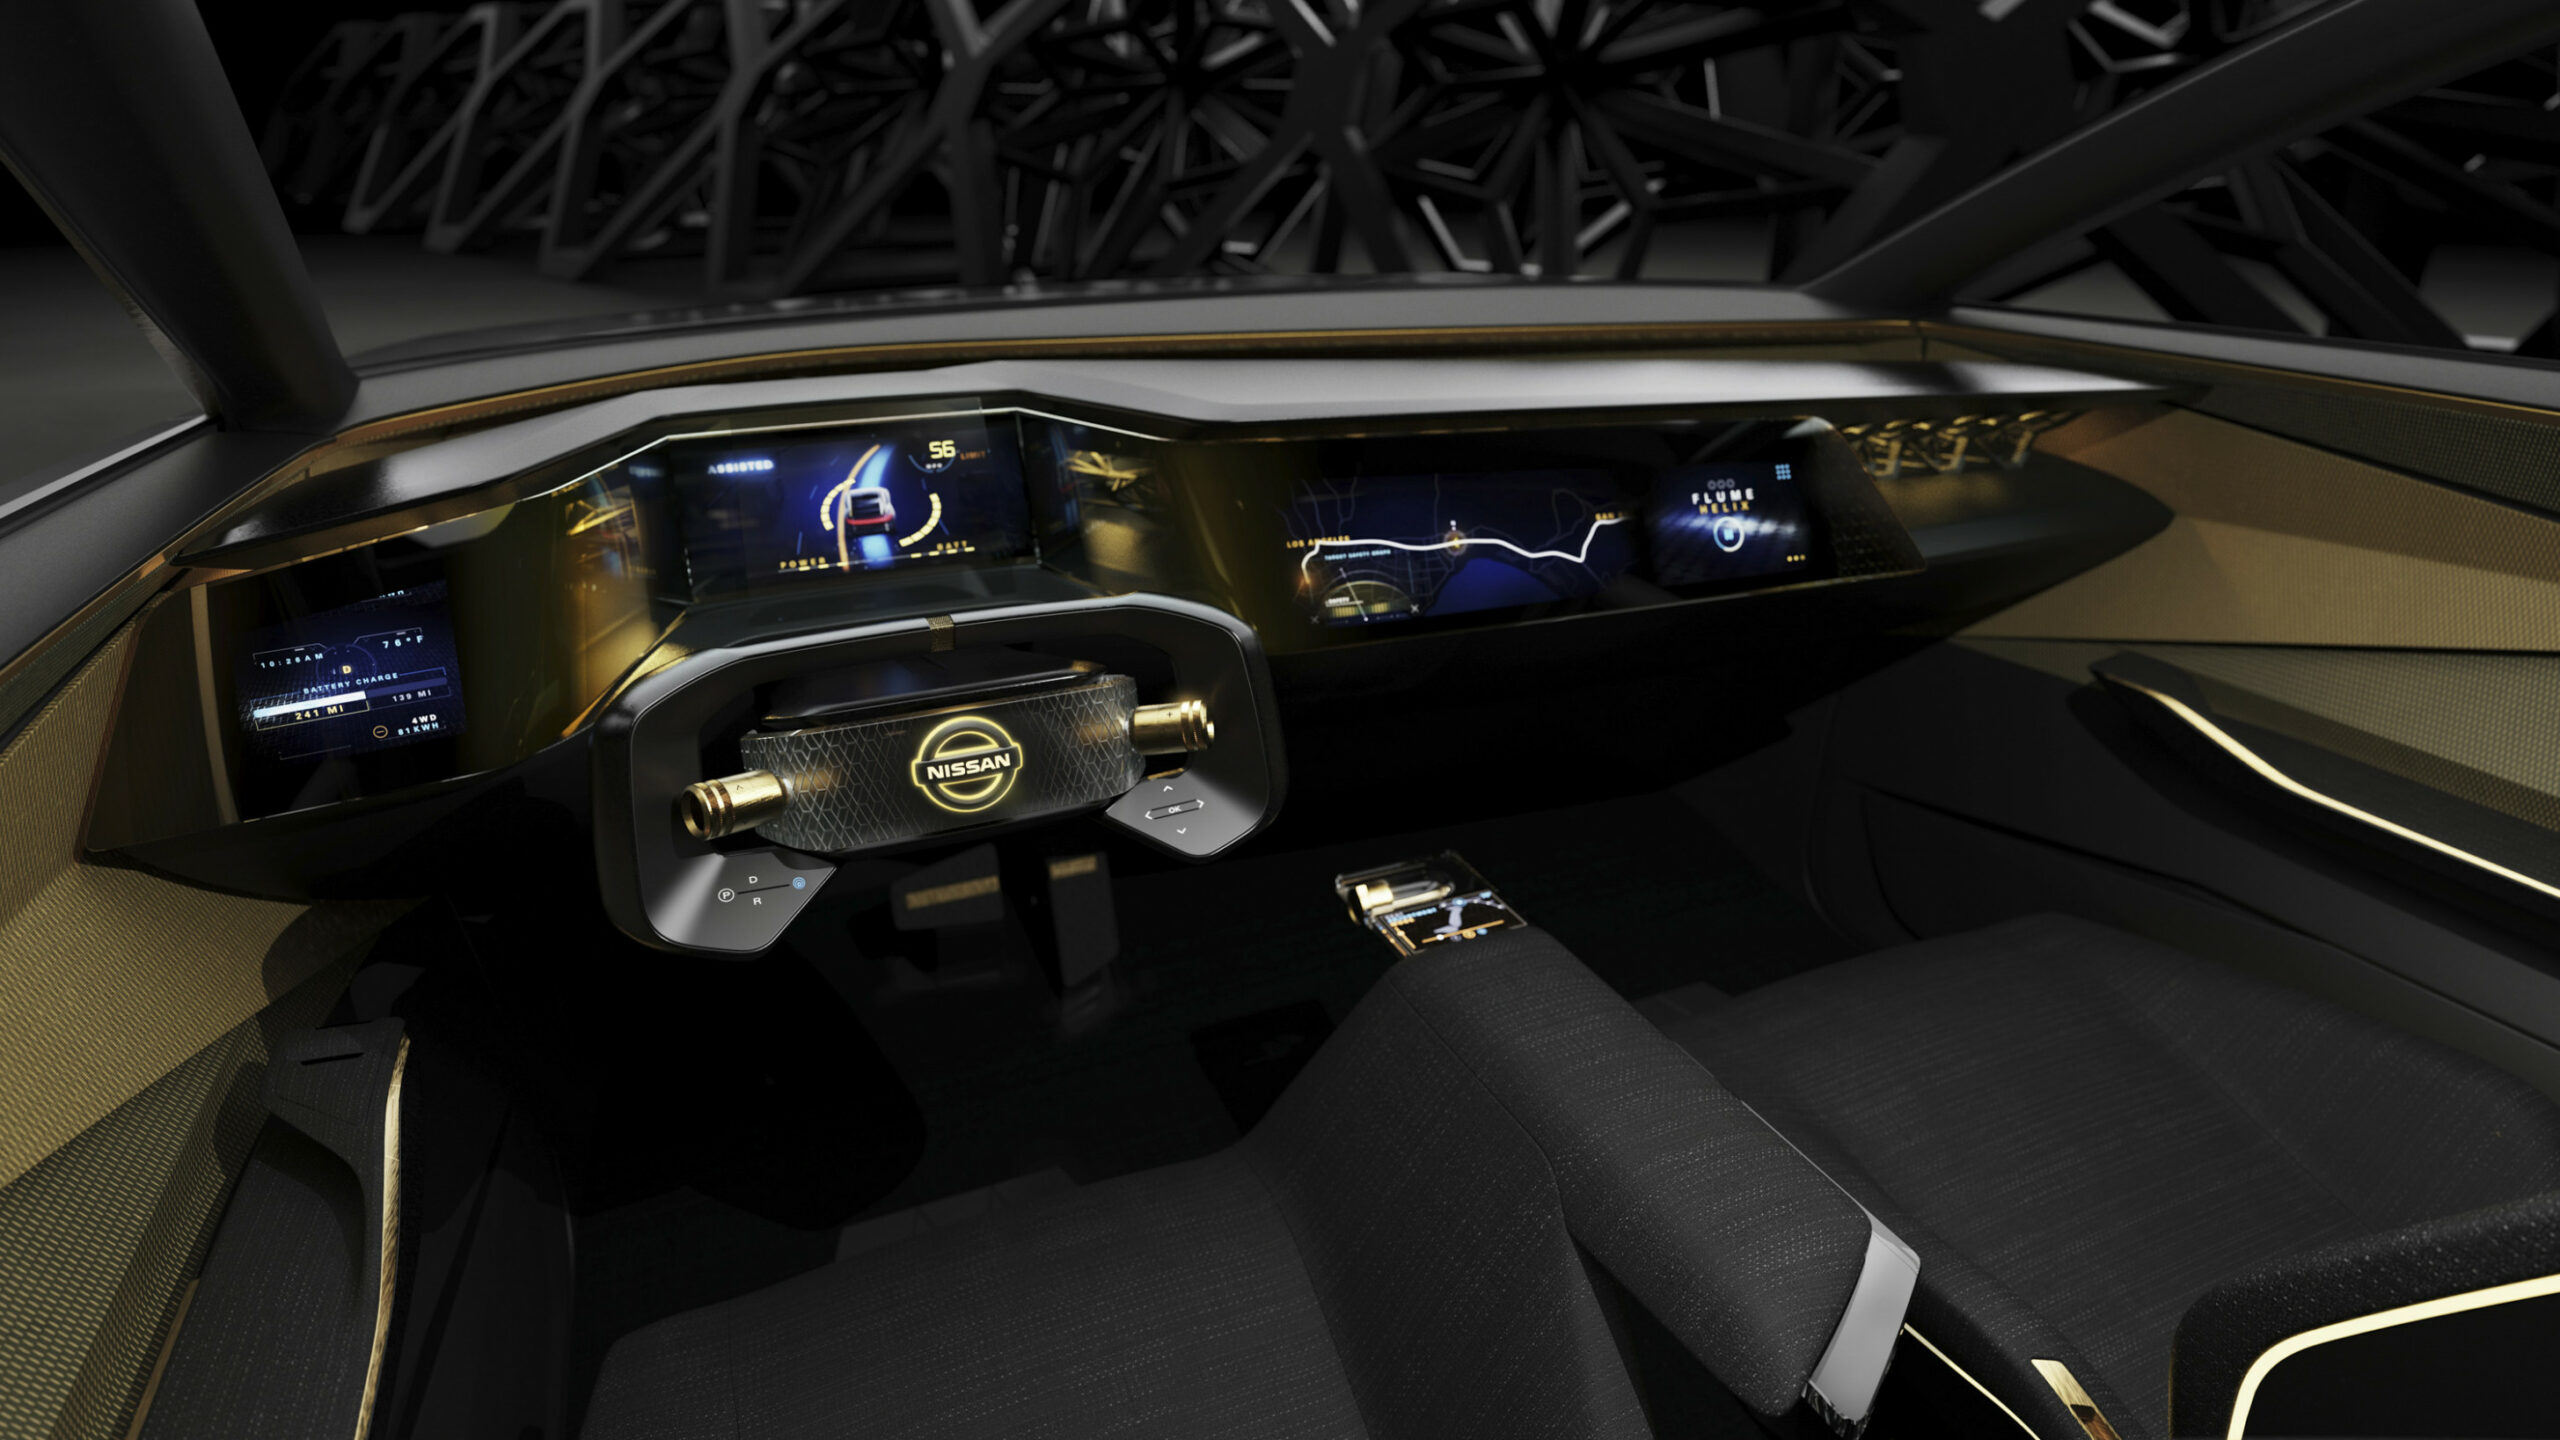 Style Nissan Concept 2022 Interior